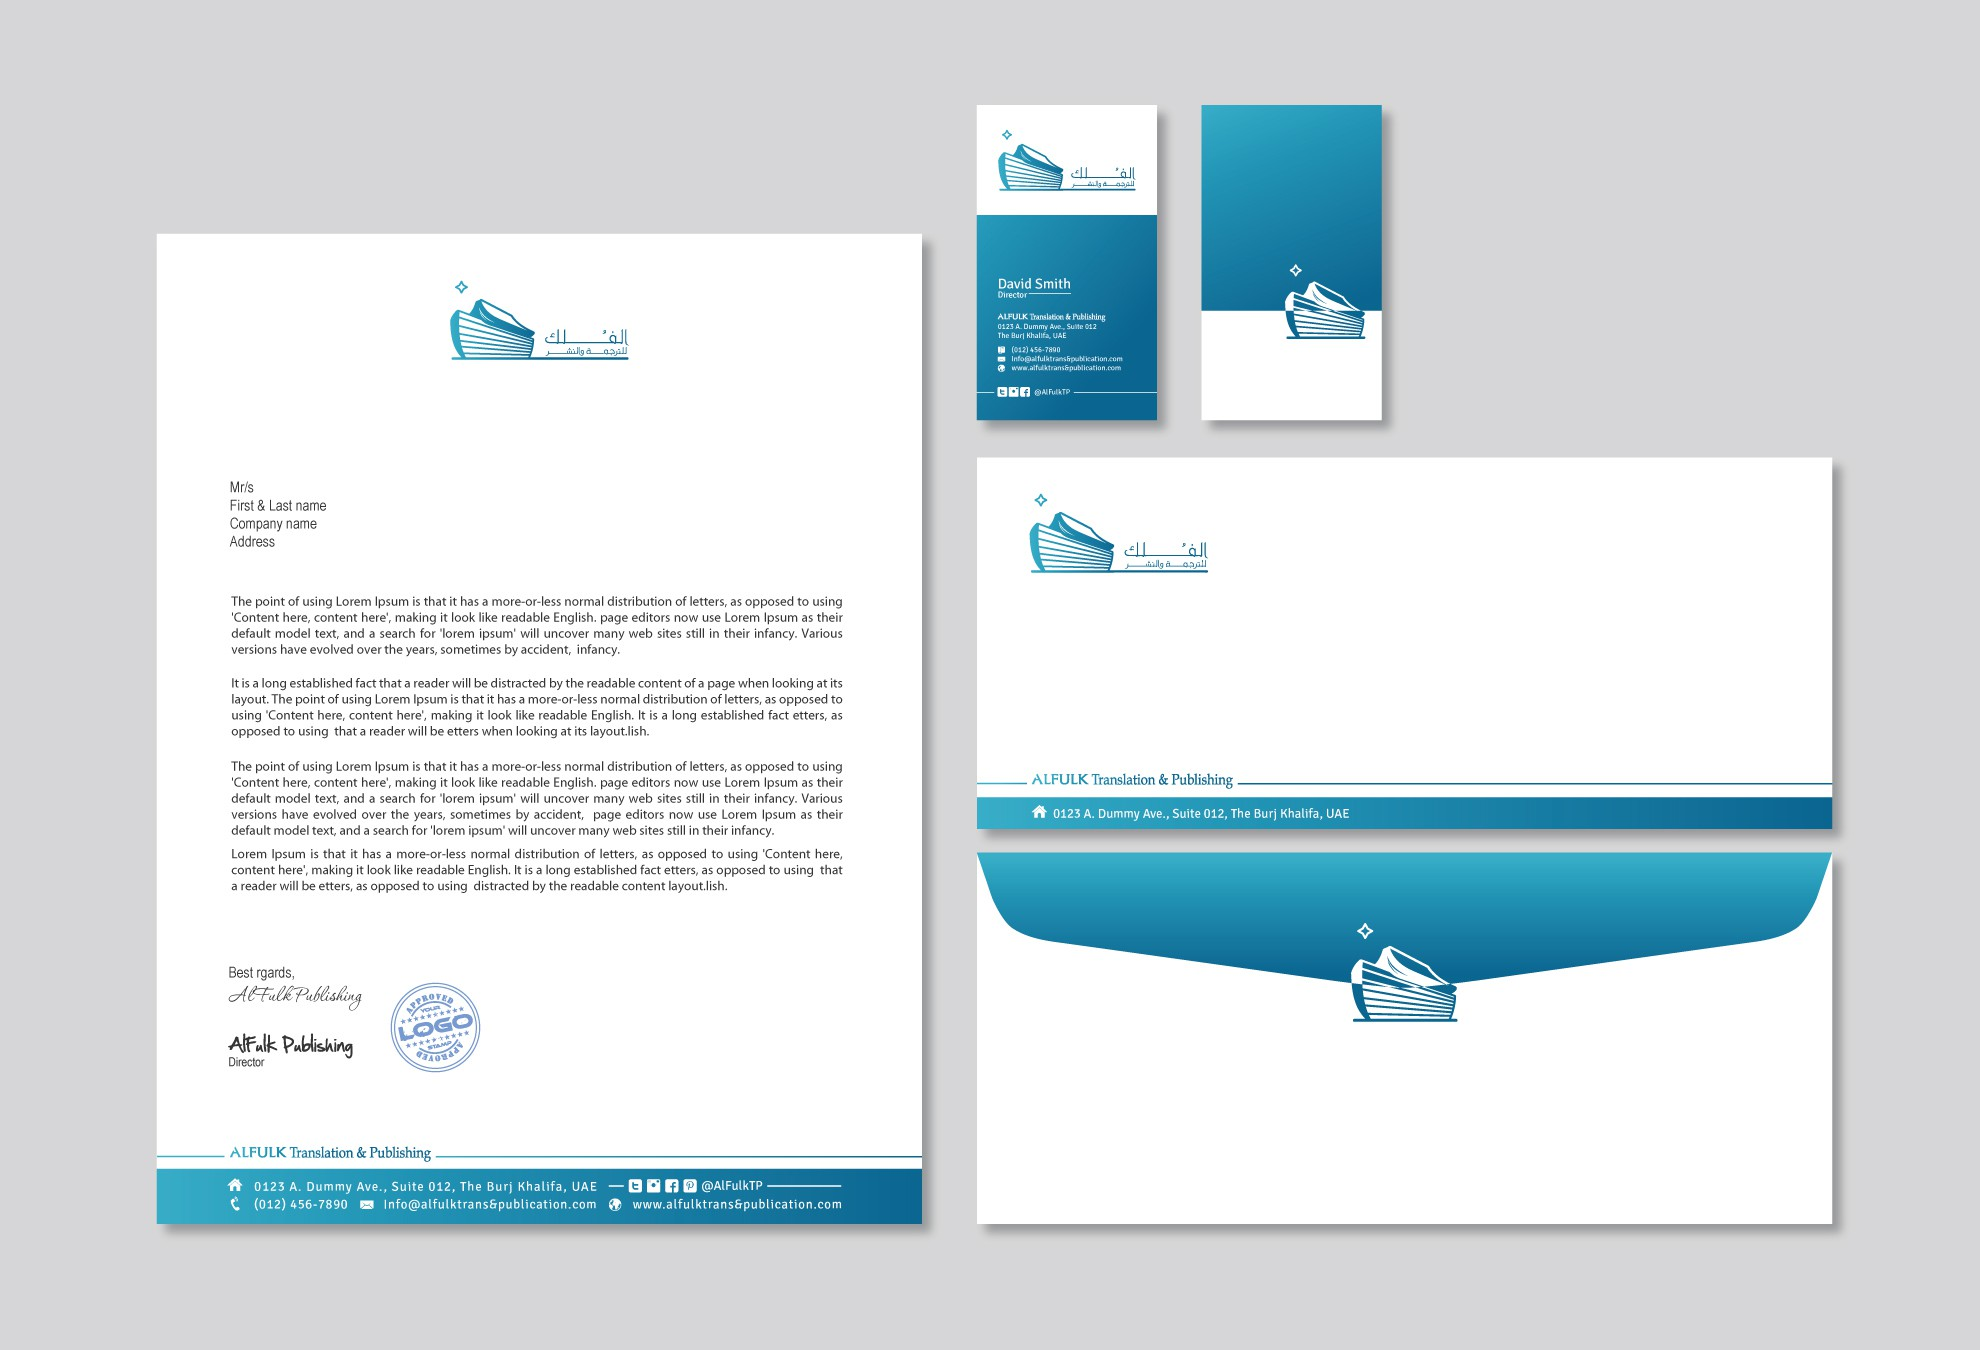 Up for a creativity challenge?! Design a book spine like Business Card & Letterhead for a Publishing house.